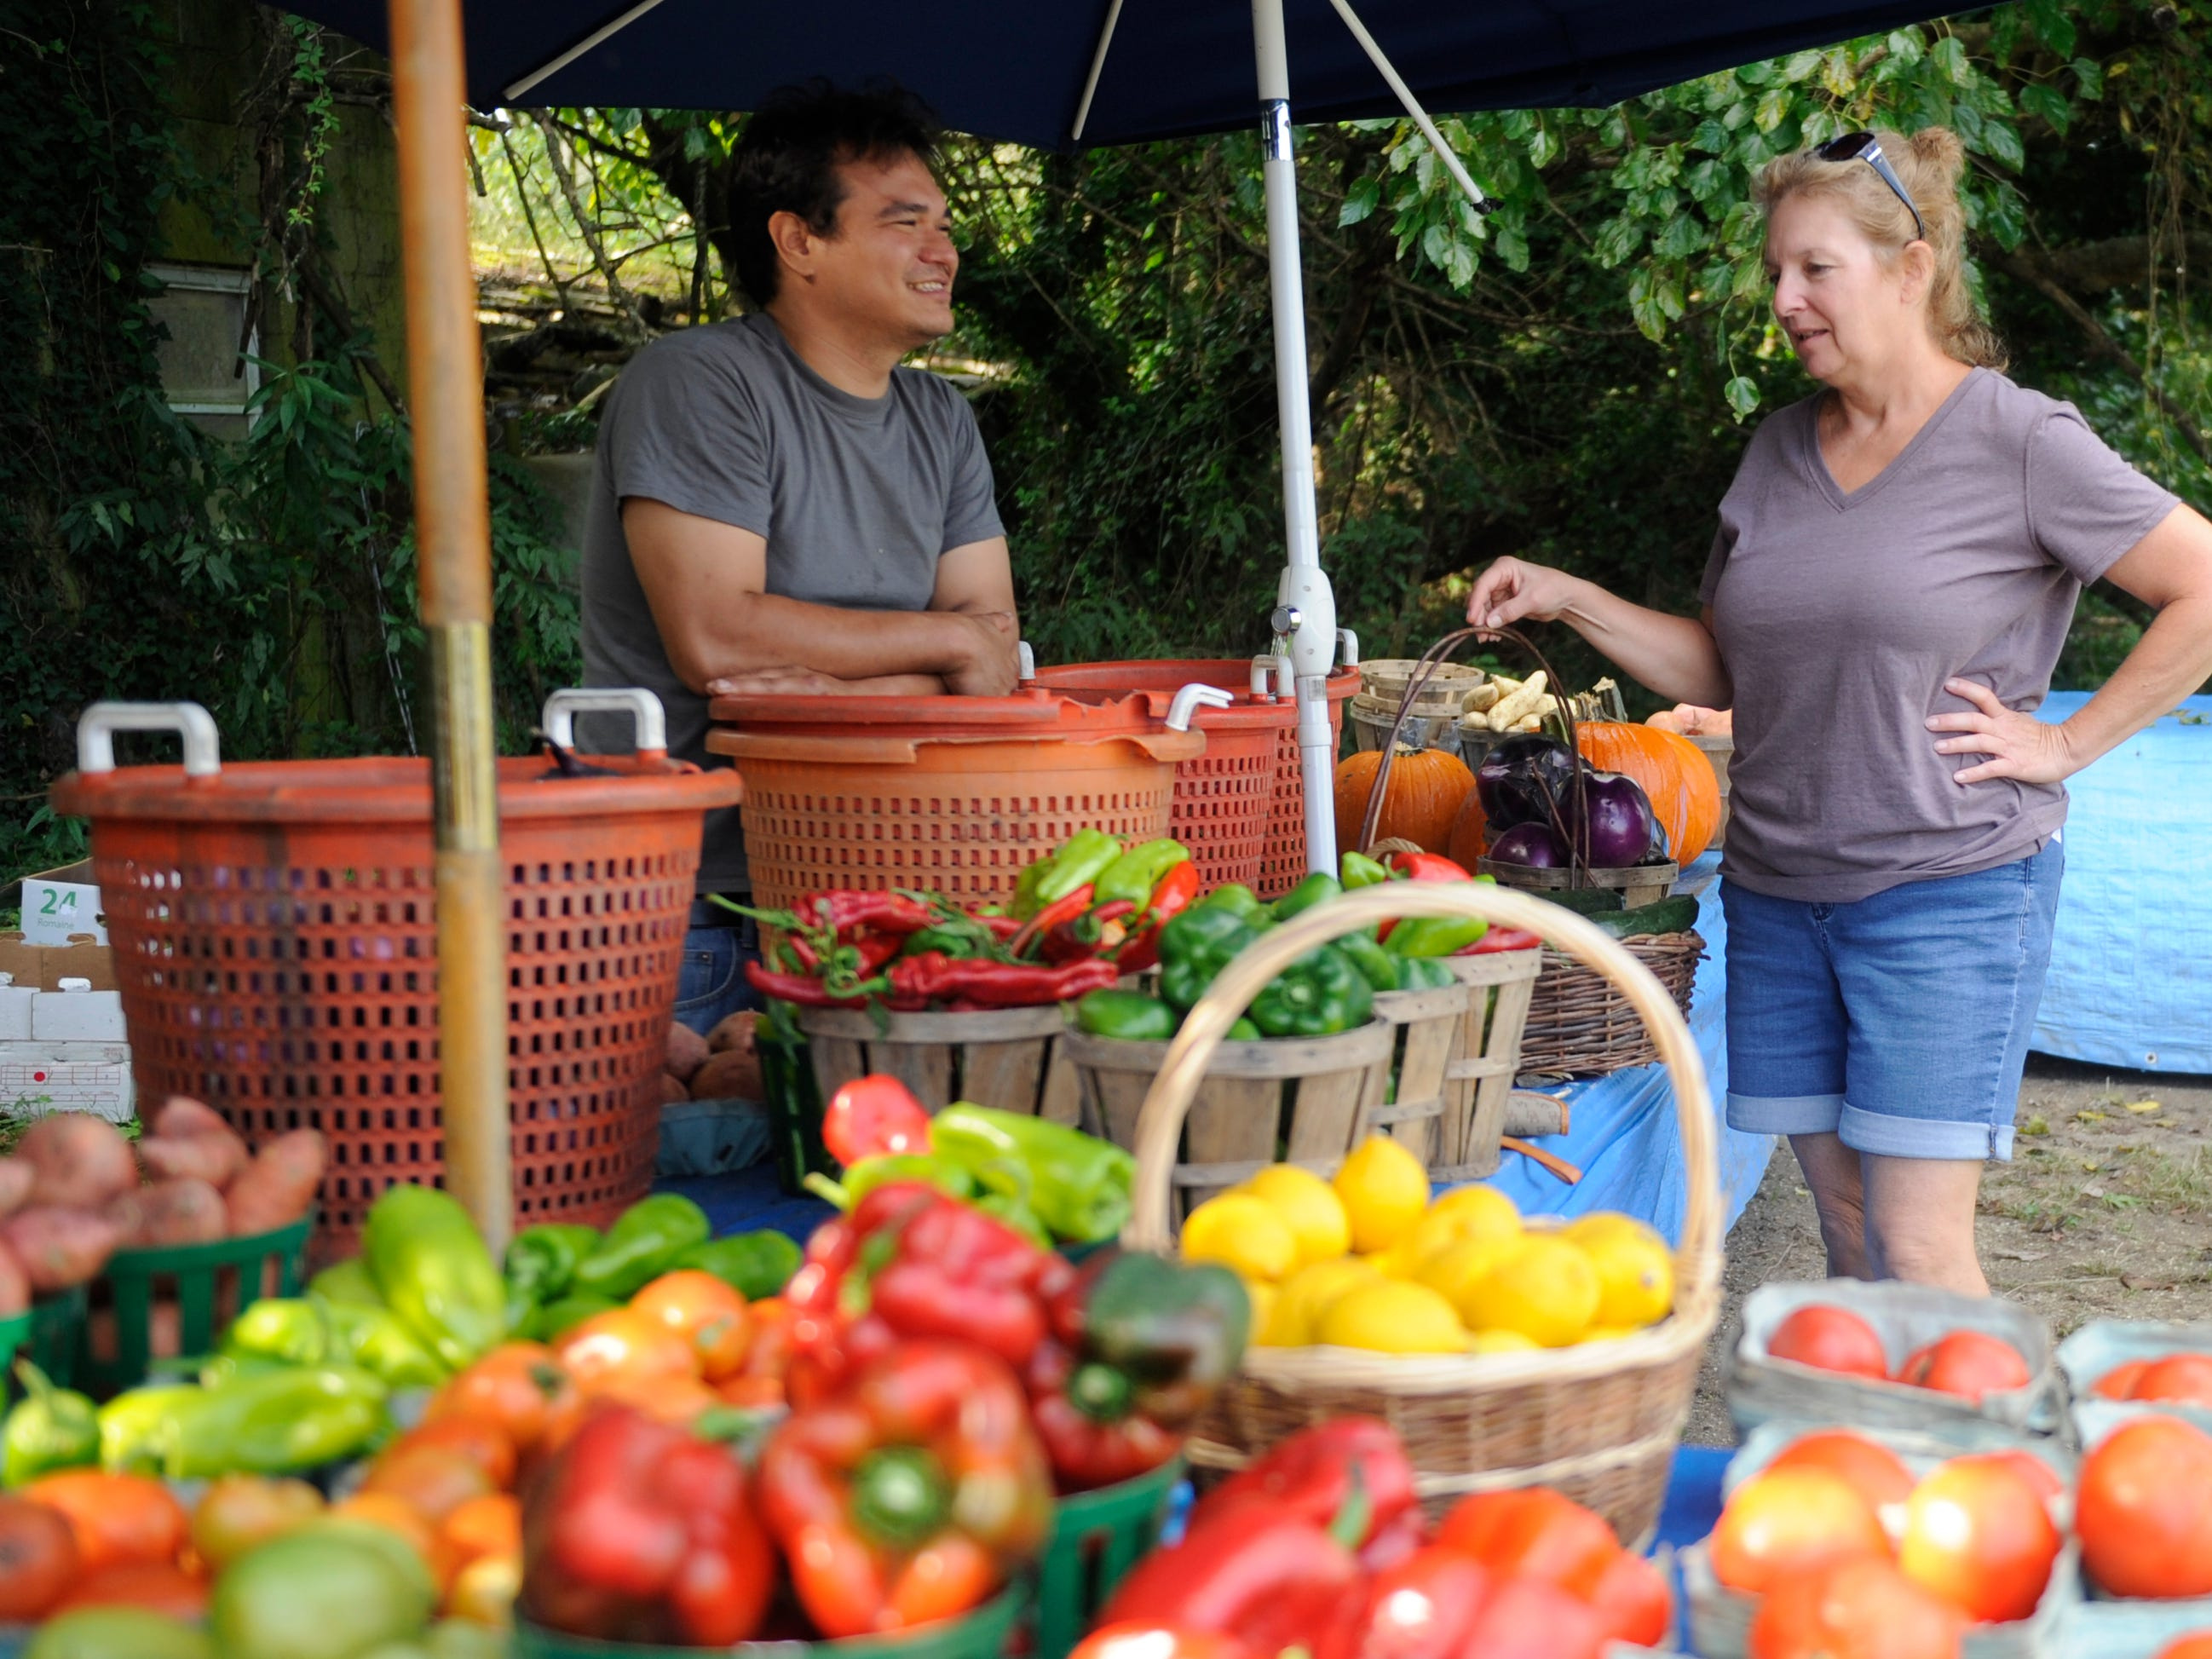 Farmer Dennis Santaniello talks about fresh fall produce with customer Mary Faith of Estell Manor at his roadside farm market on Oak Road in Vineland on Thursday, October 4, 2018.